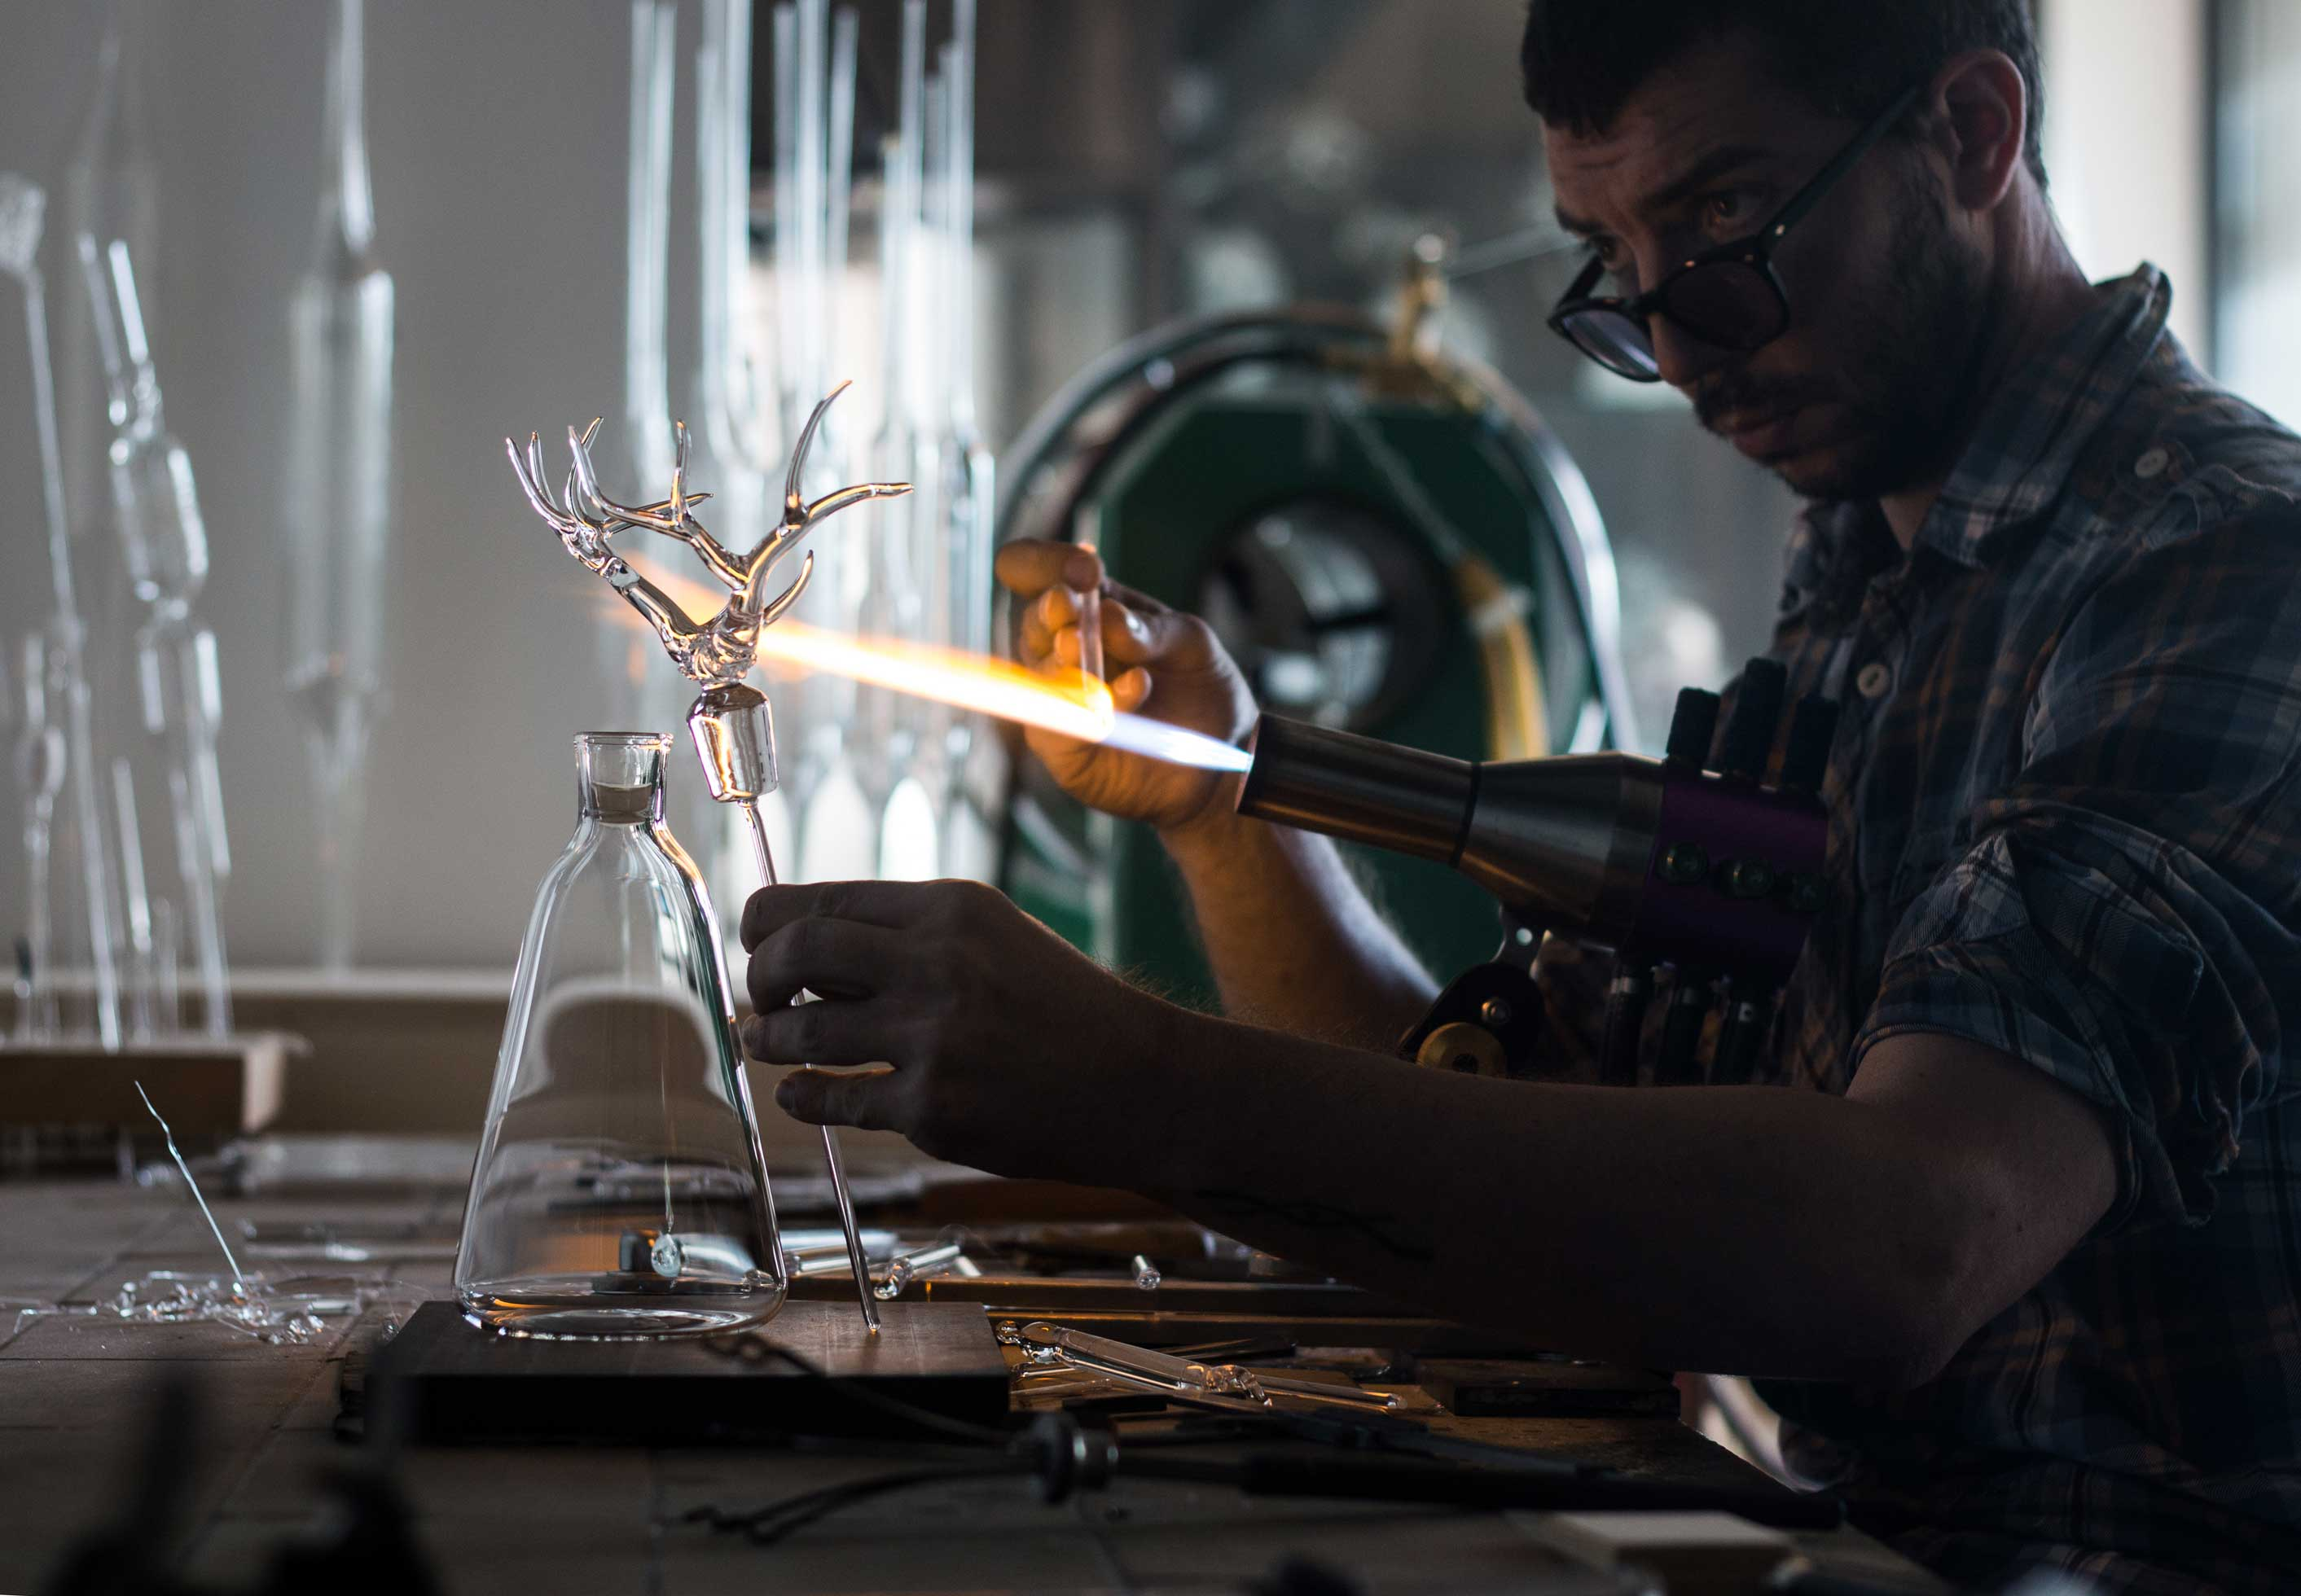 The Best of Glassworking Art: Simone Crestani glassworking The Best of Glassworking Art: Simone Crestani Simone Crestani at work